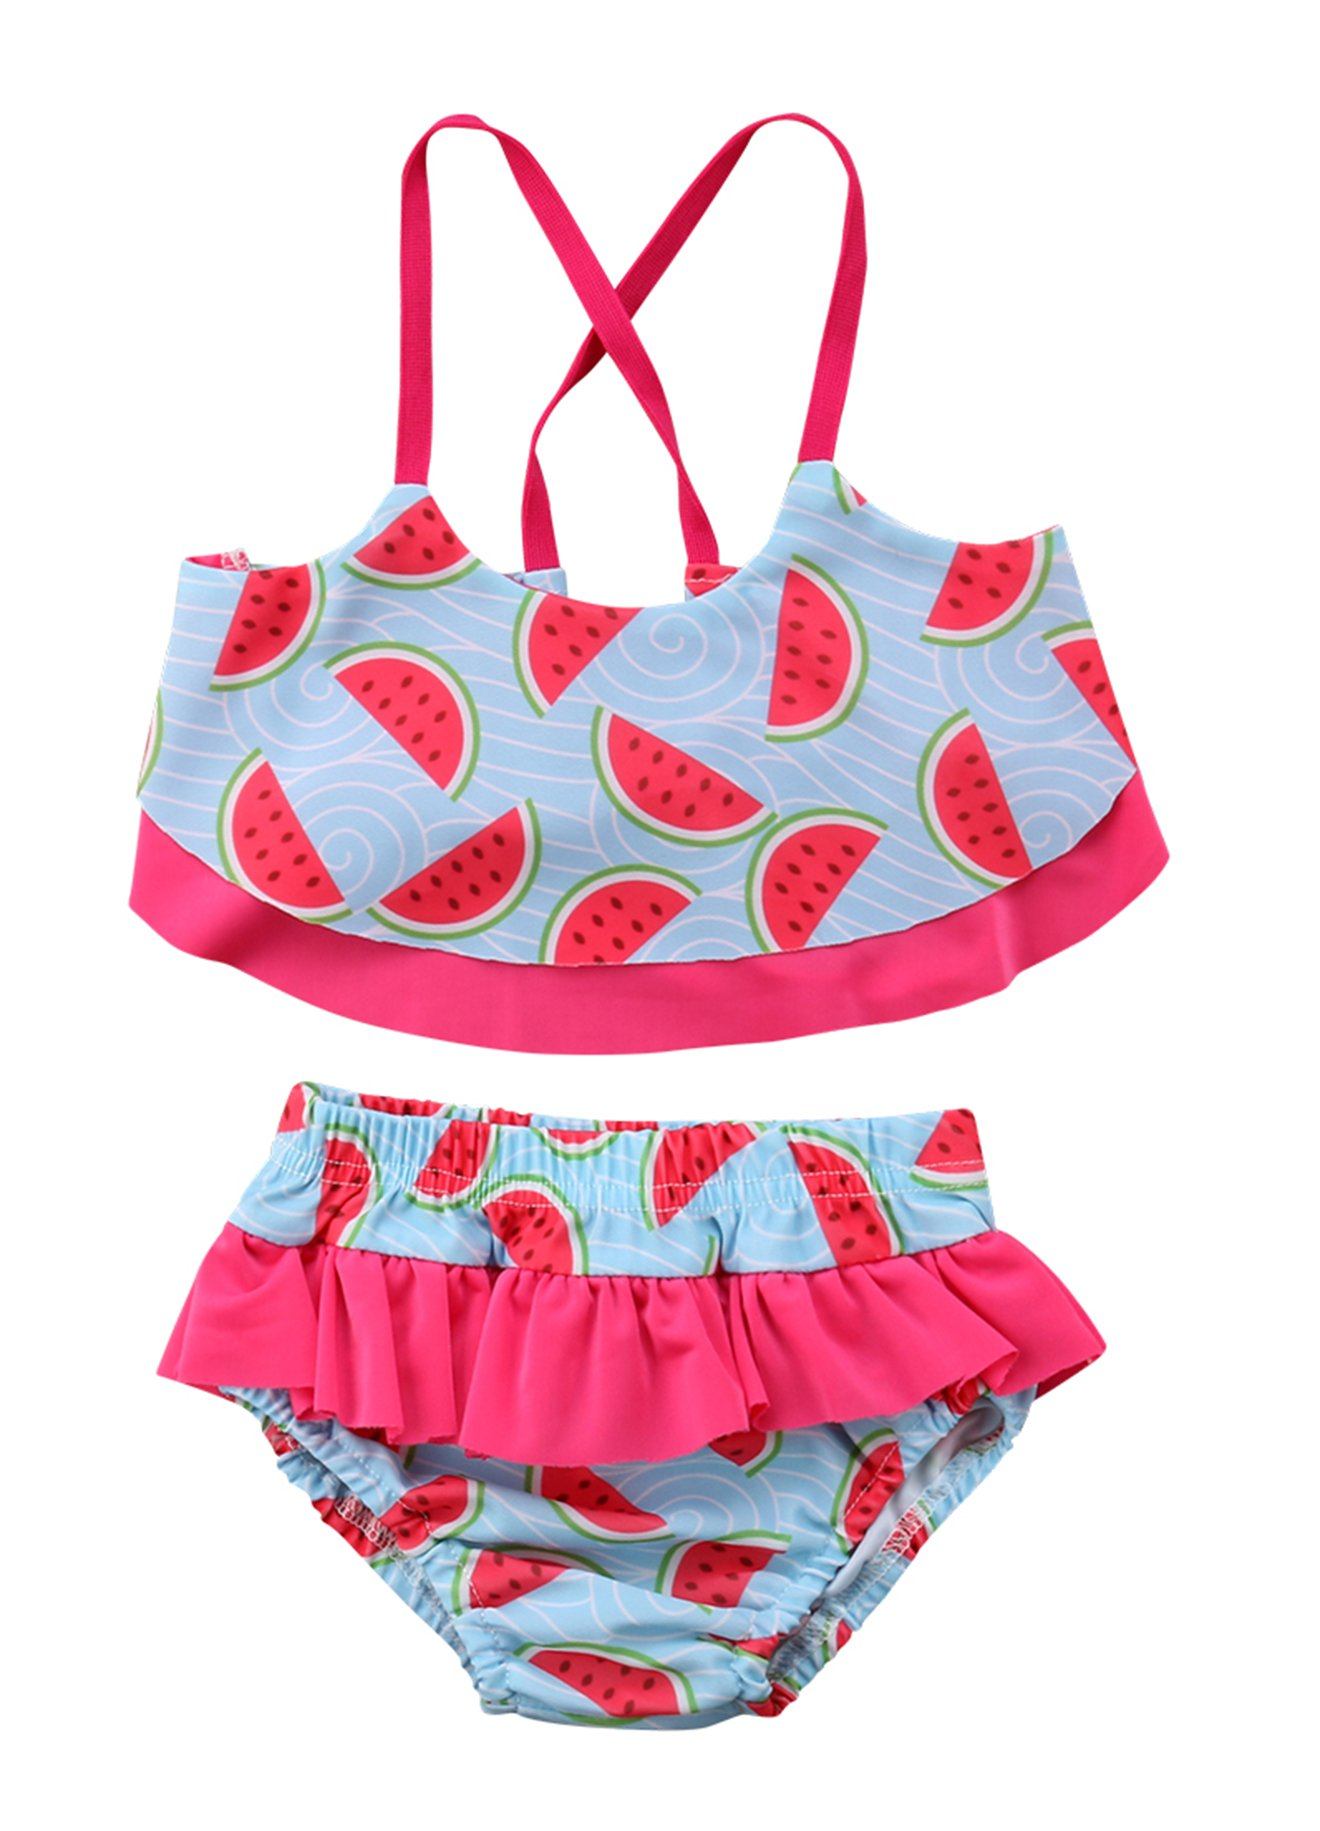 Kids Baby Girls Cute Watermelon Halter Two-Pieces Ruffle Bikini Set Swimsuit Baithing Suit